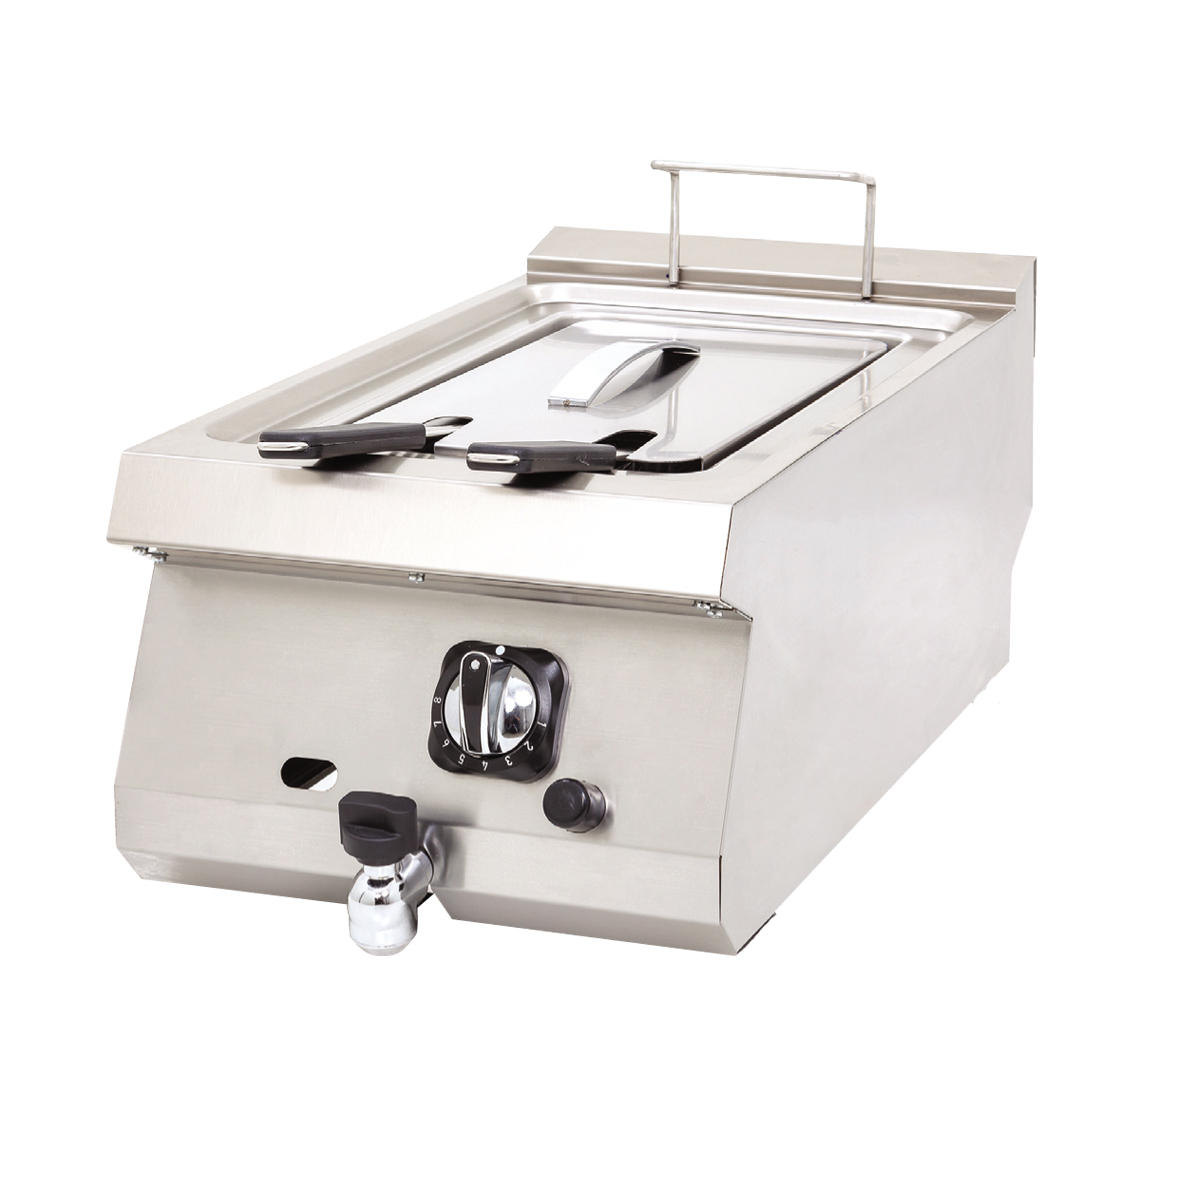 Gas Fryer - 40x60